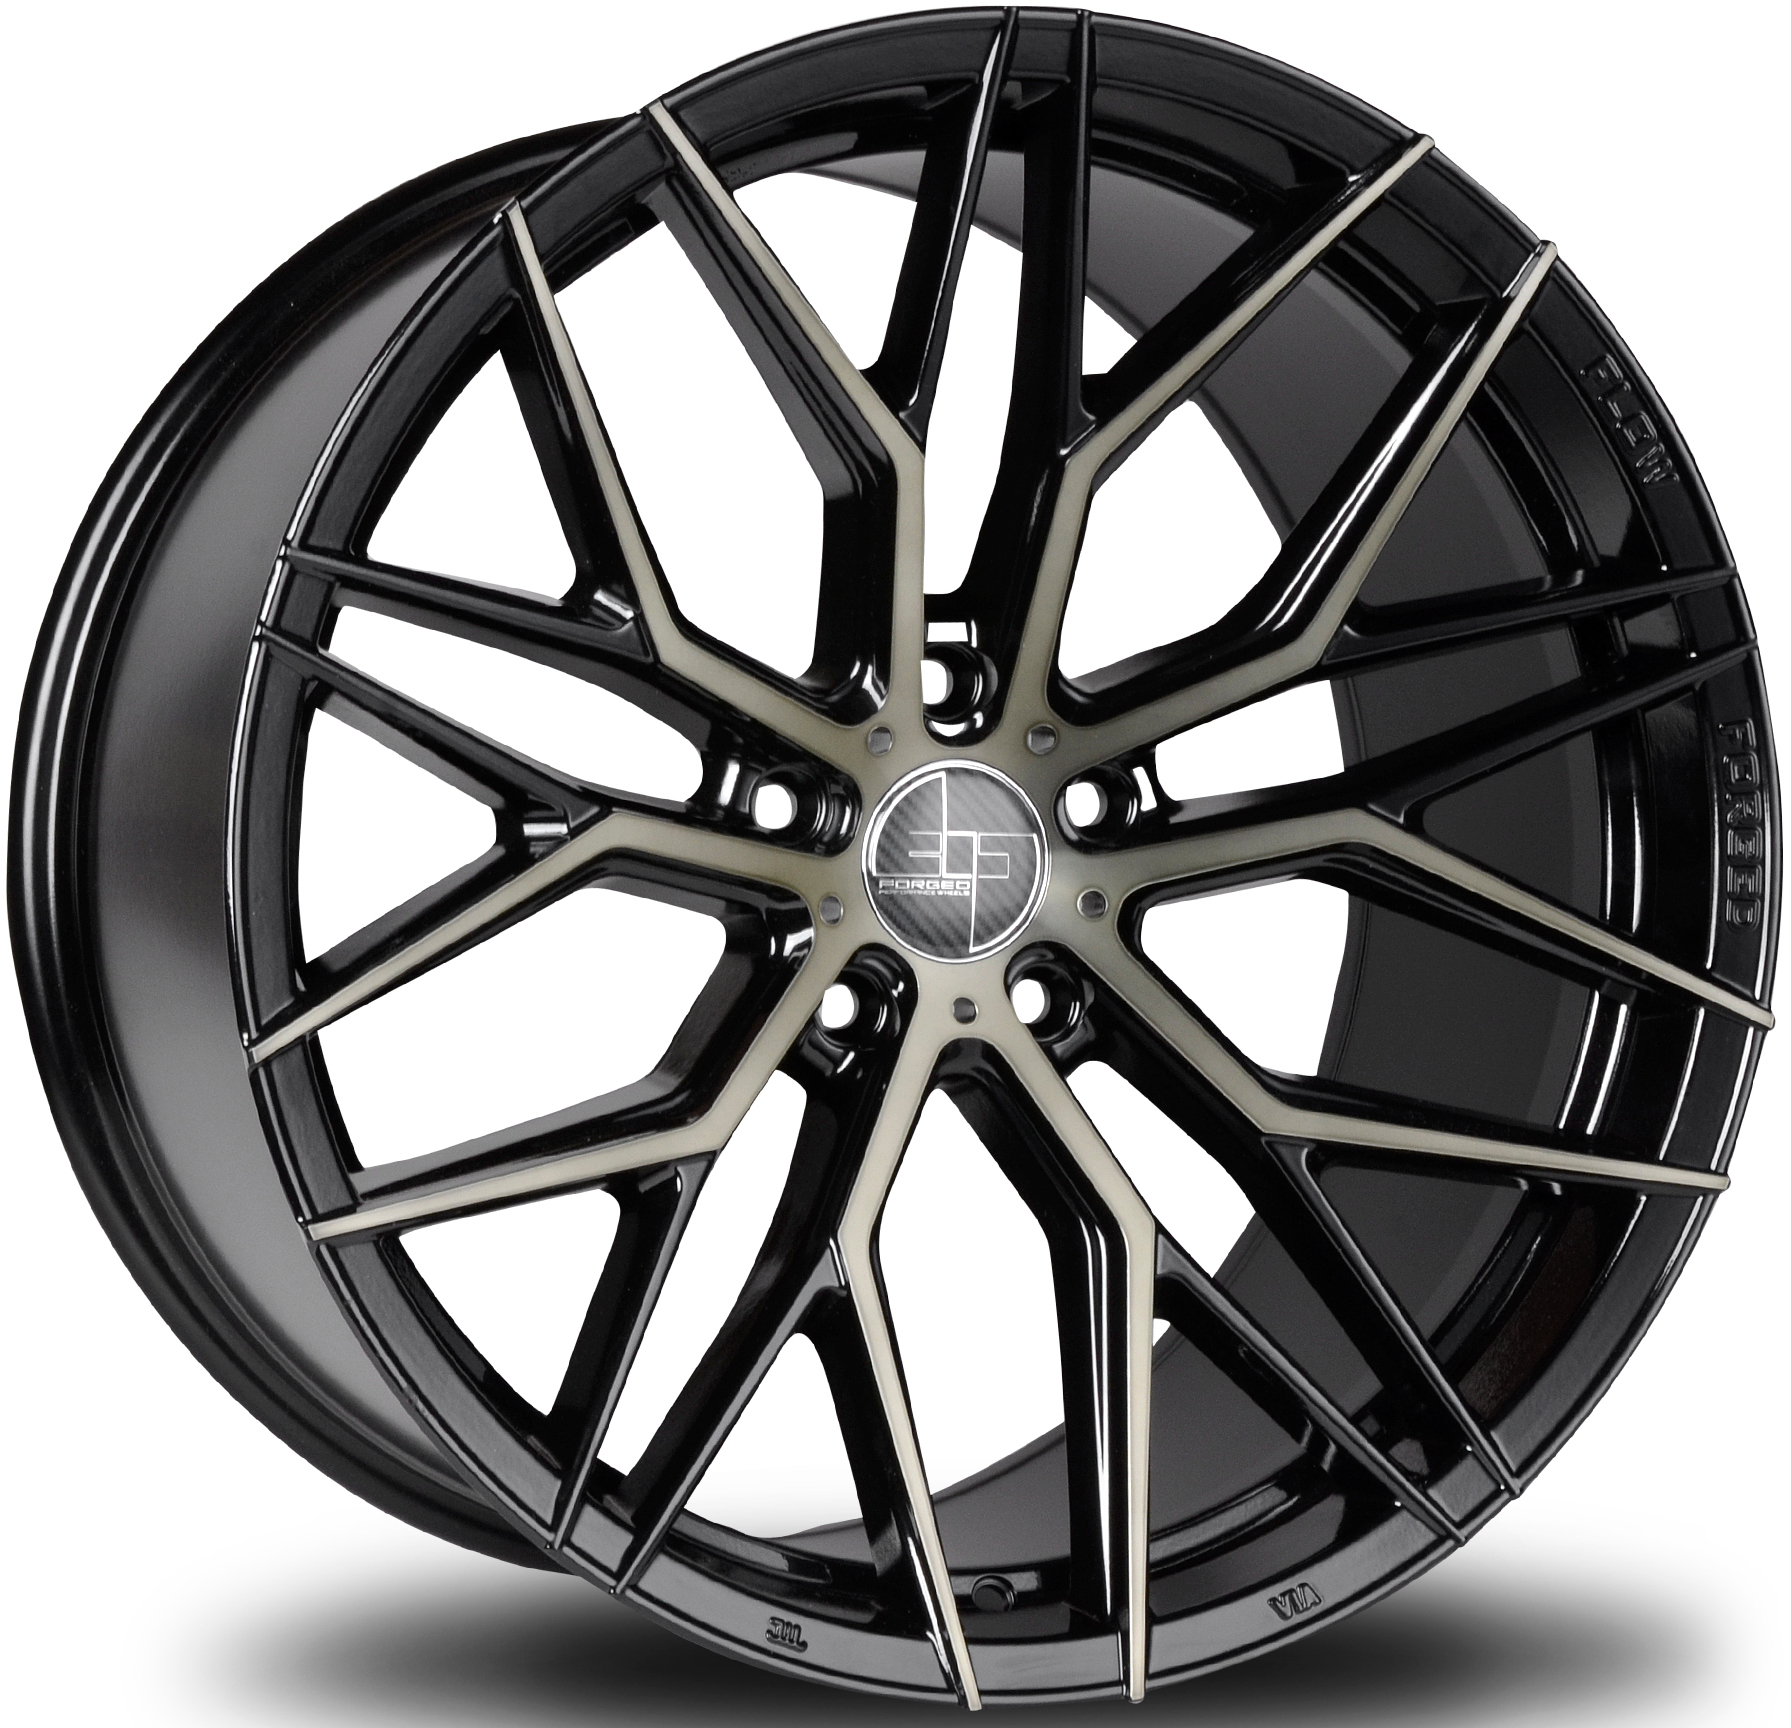 305Forged FT 107 Wheels for Infiniti